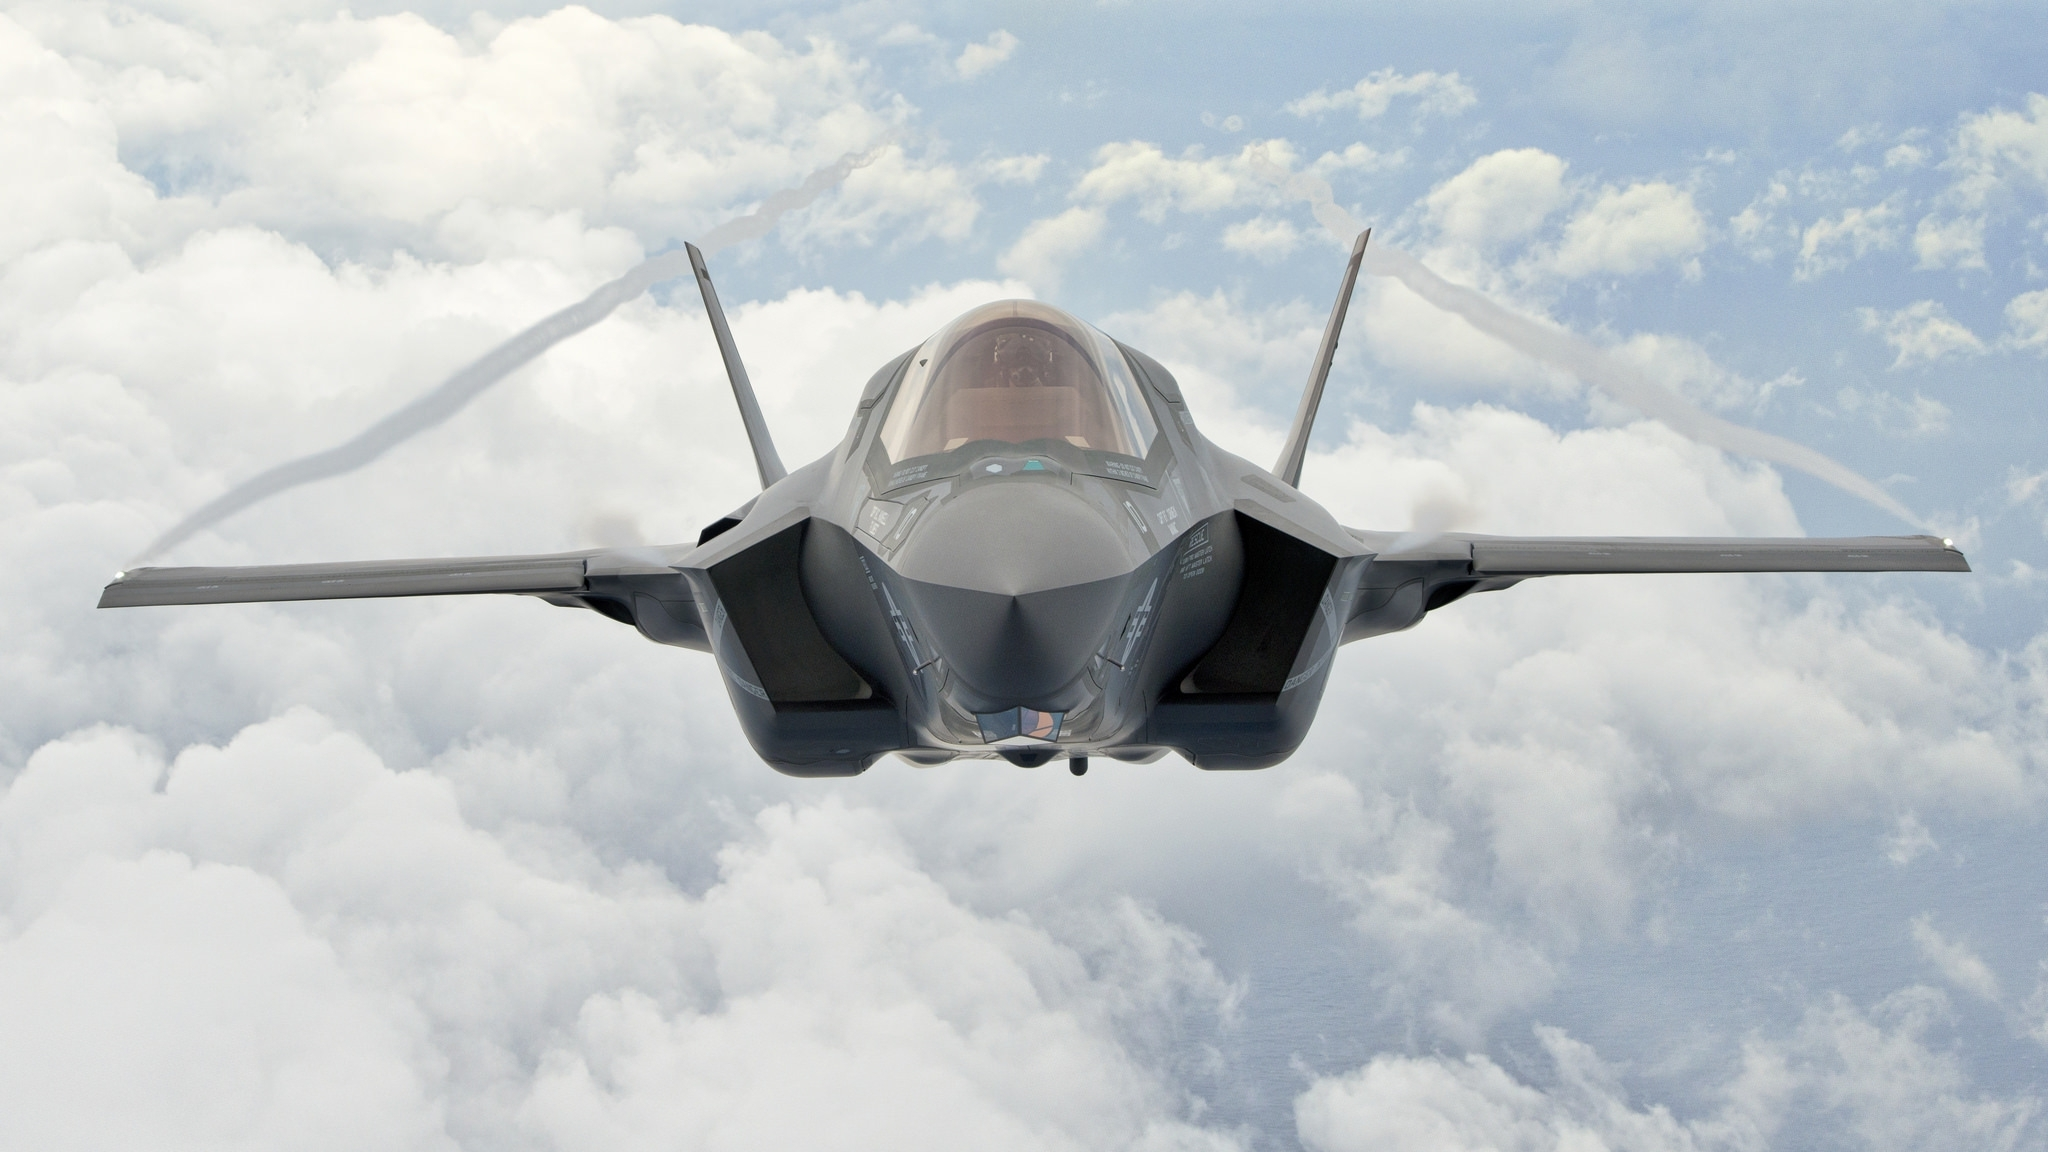 90 lockheed martin f-35 lightning ii hd wallpapers | background